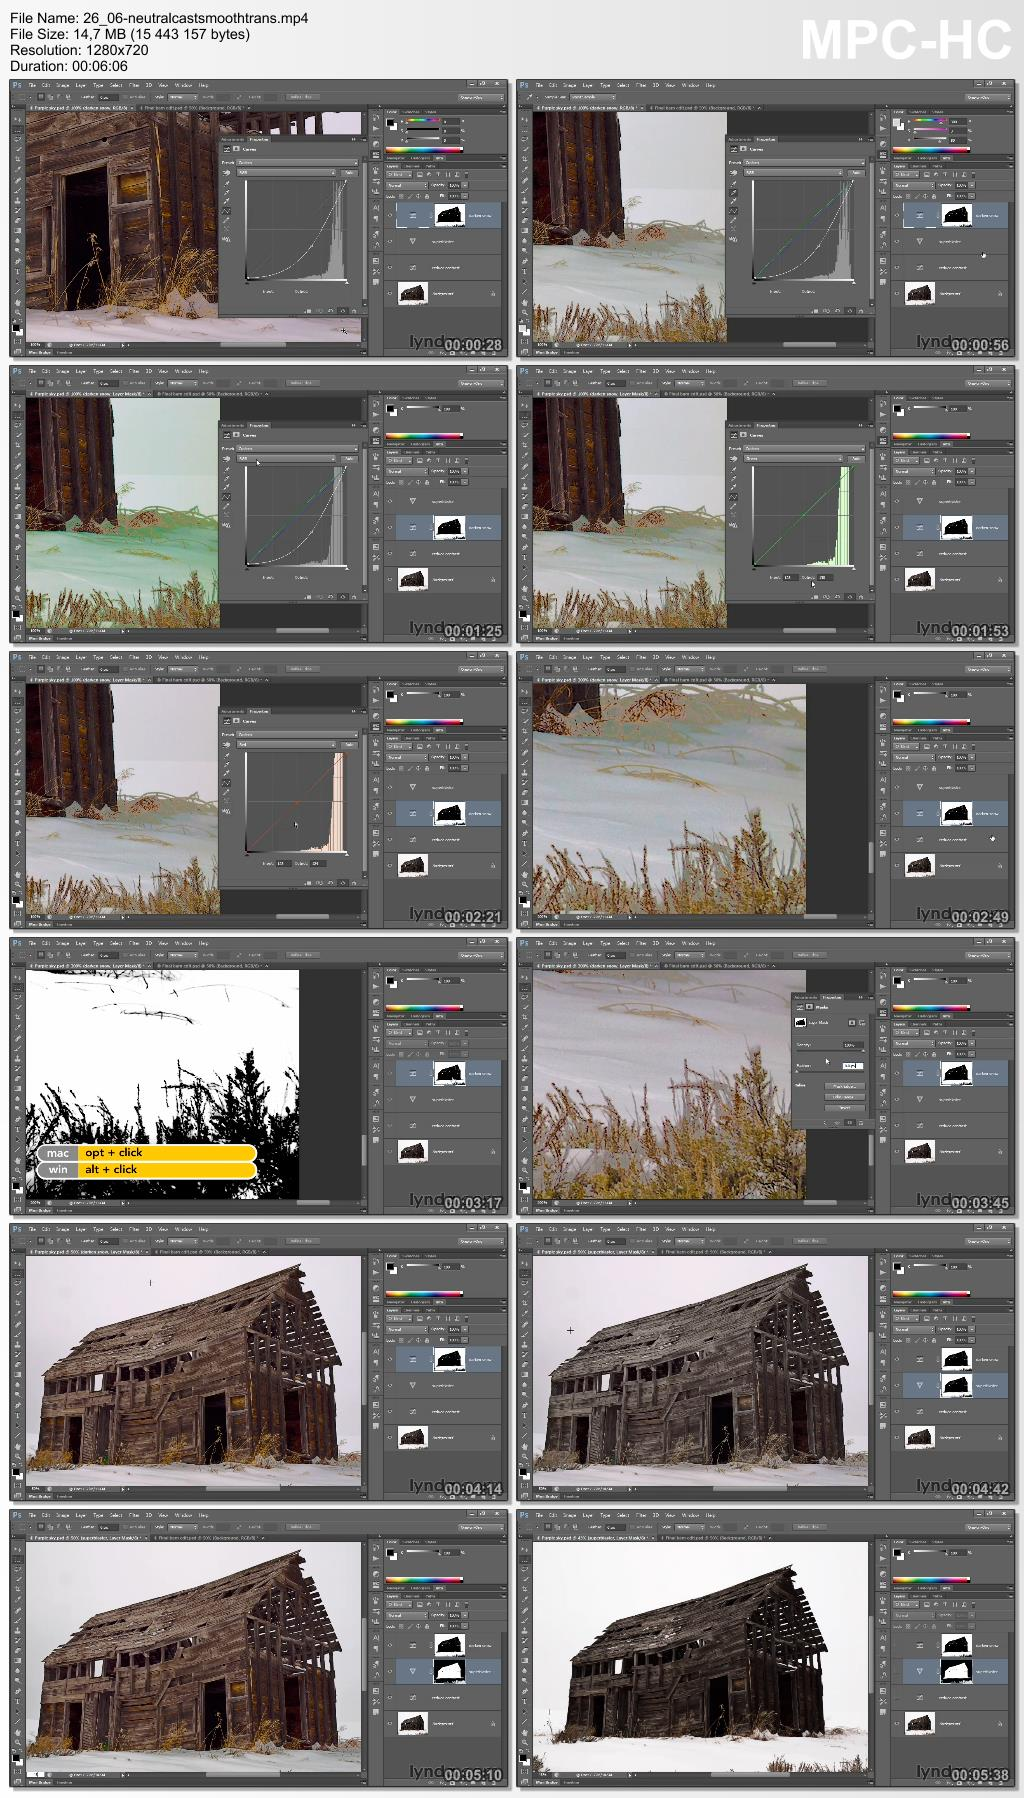 Lynda - Photoshop CC One-on-One: Advanced (Updated Sep 19, 2014)